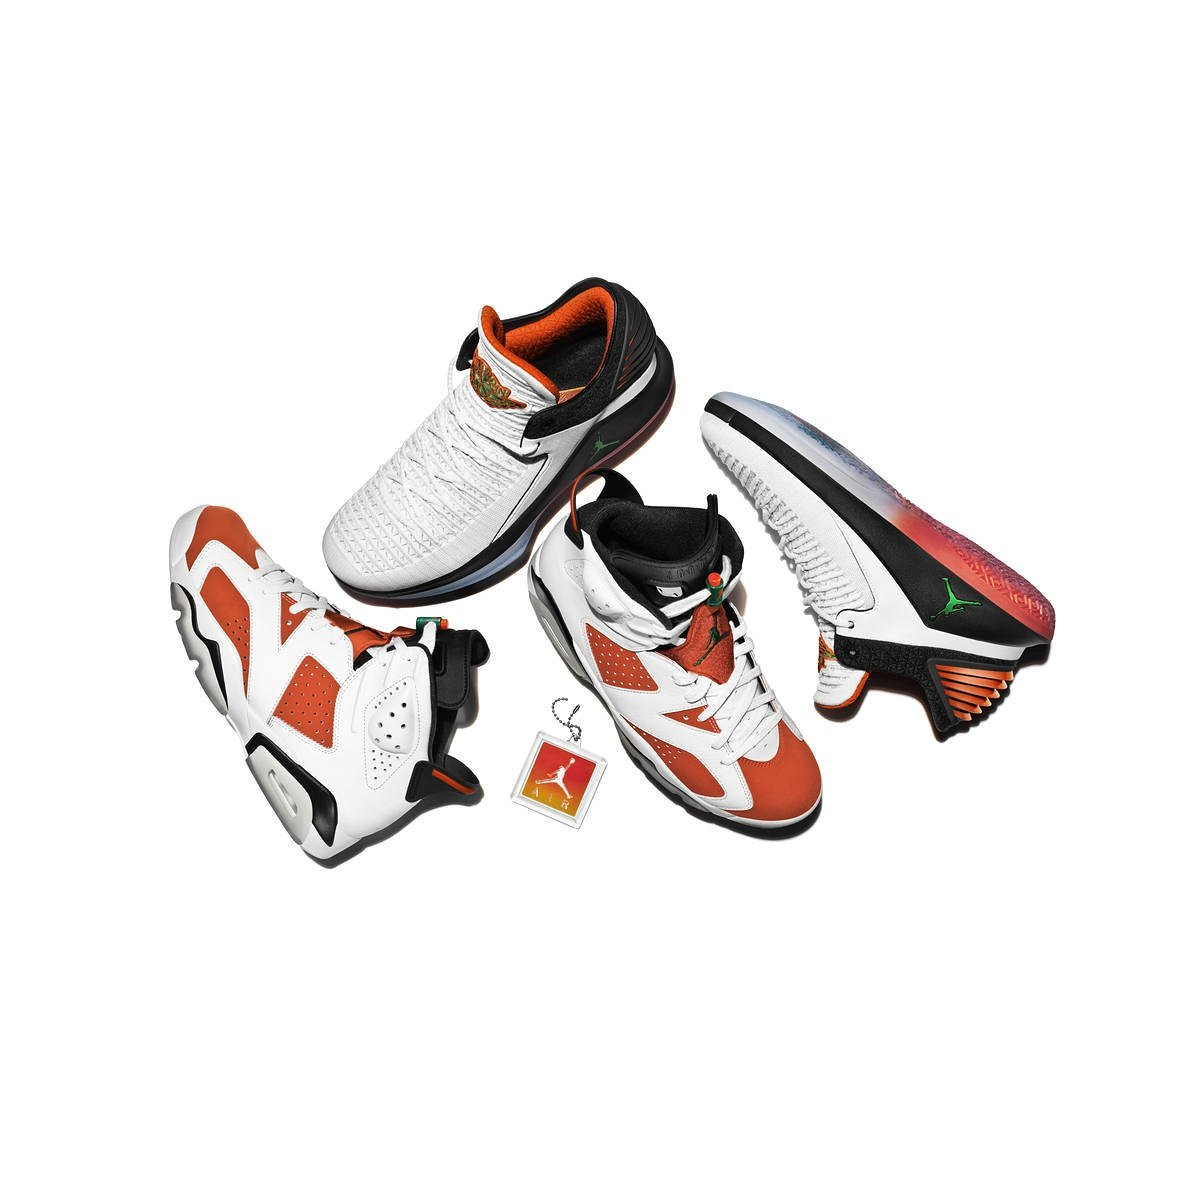 f81377595a1 The  likemike gatorade x air jordan vi and xxxii. december 16 can t come  soon enough.